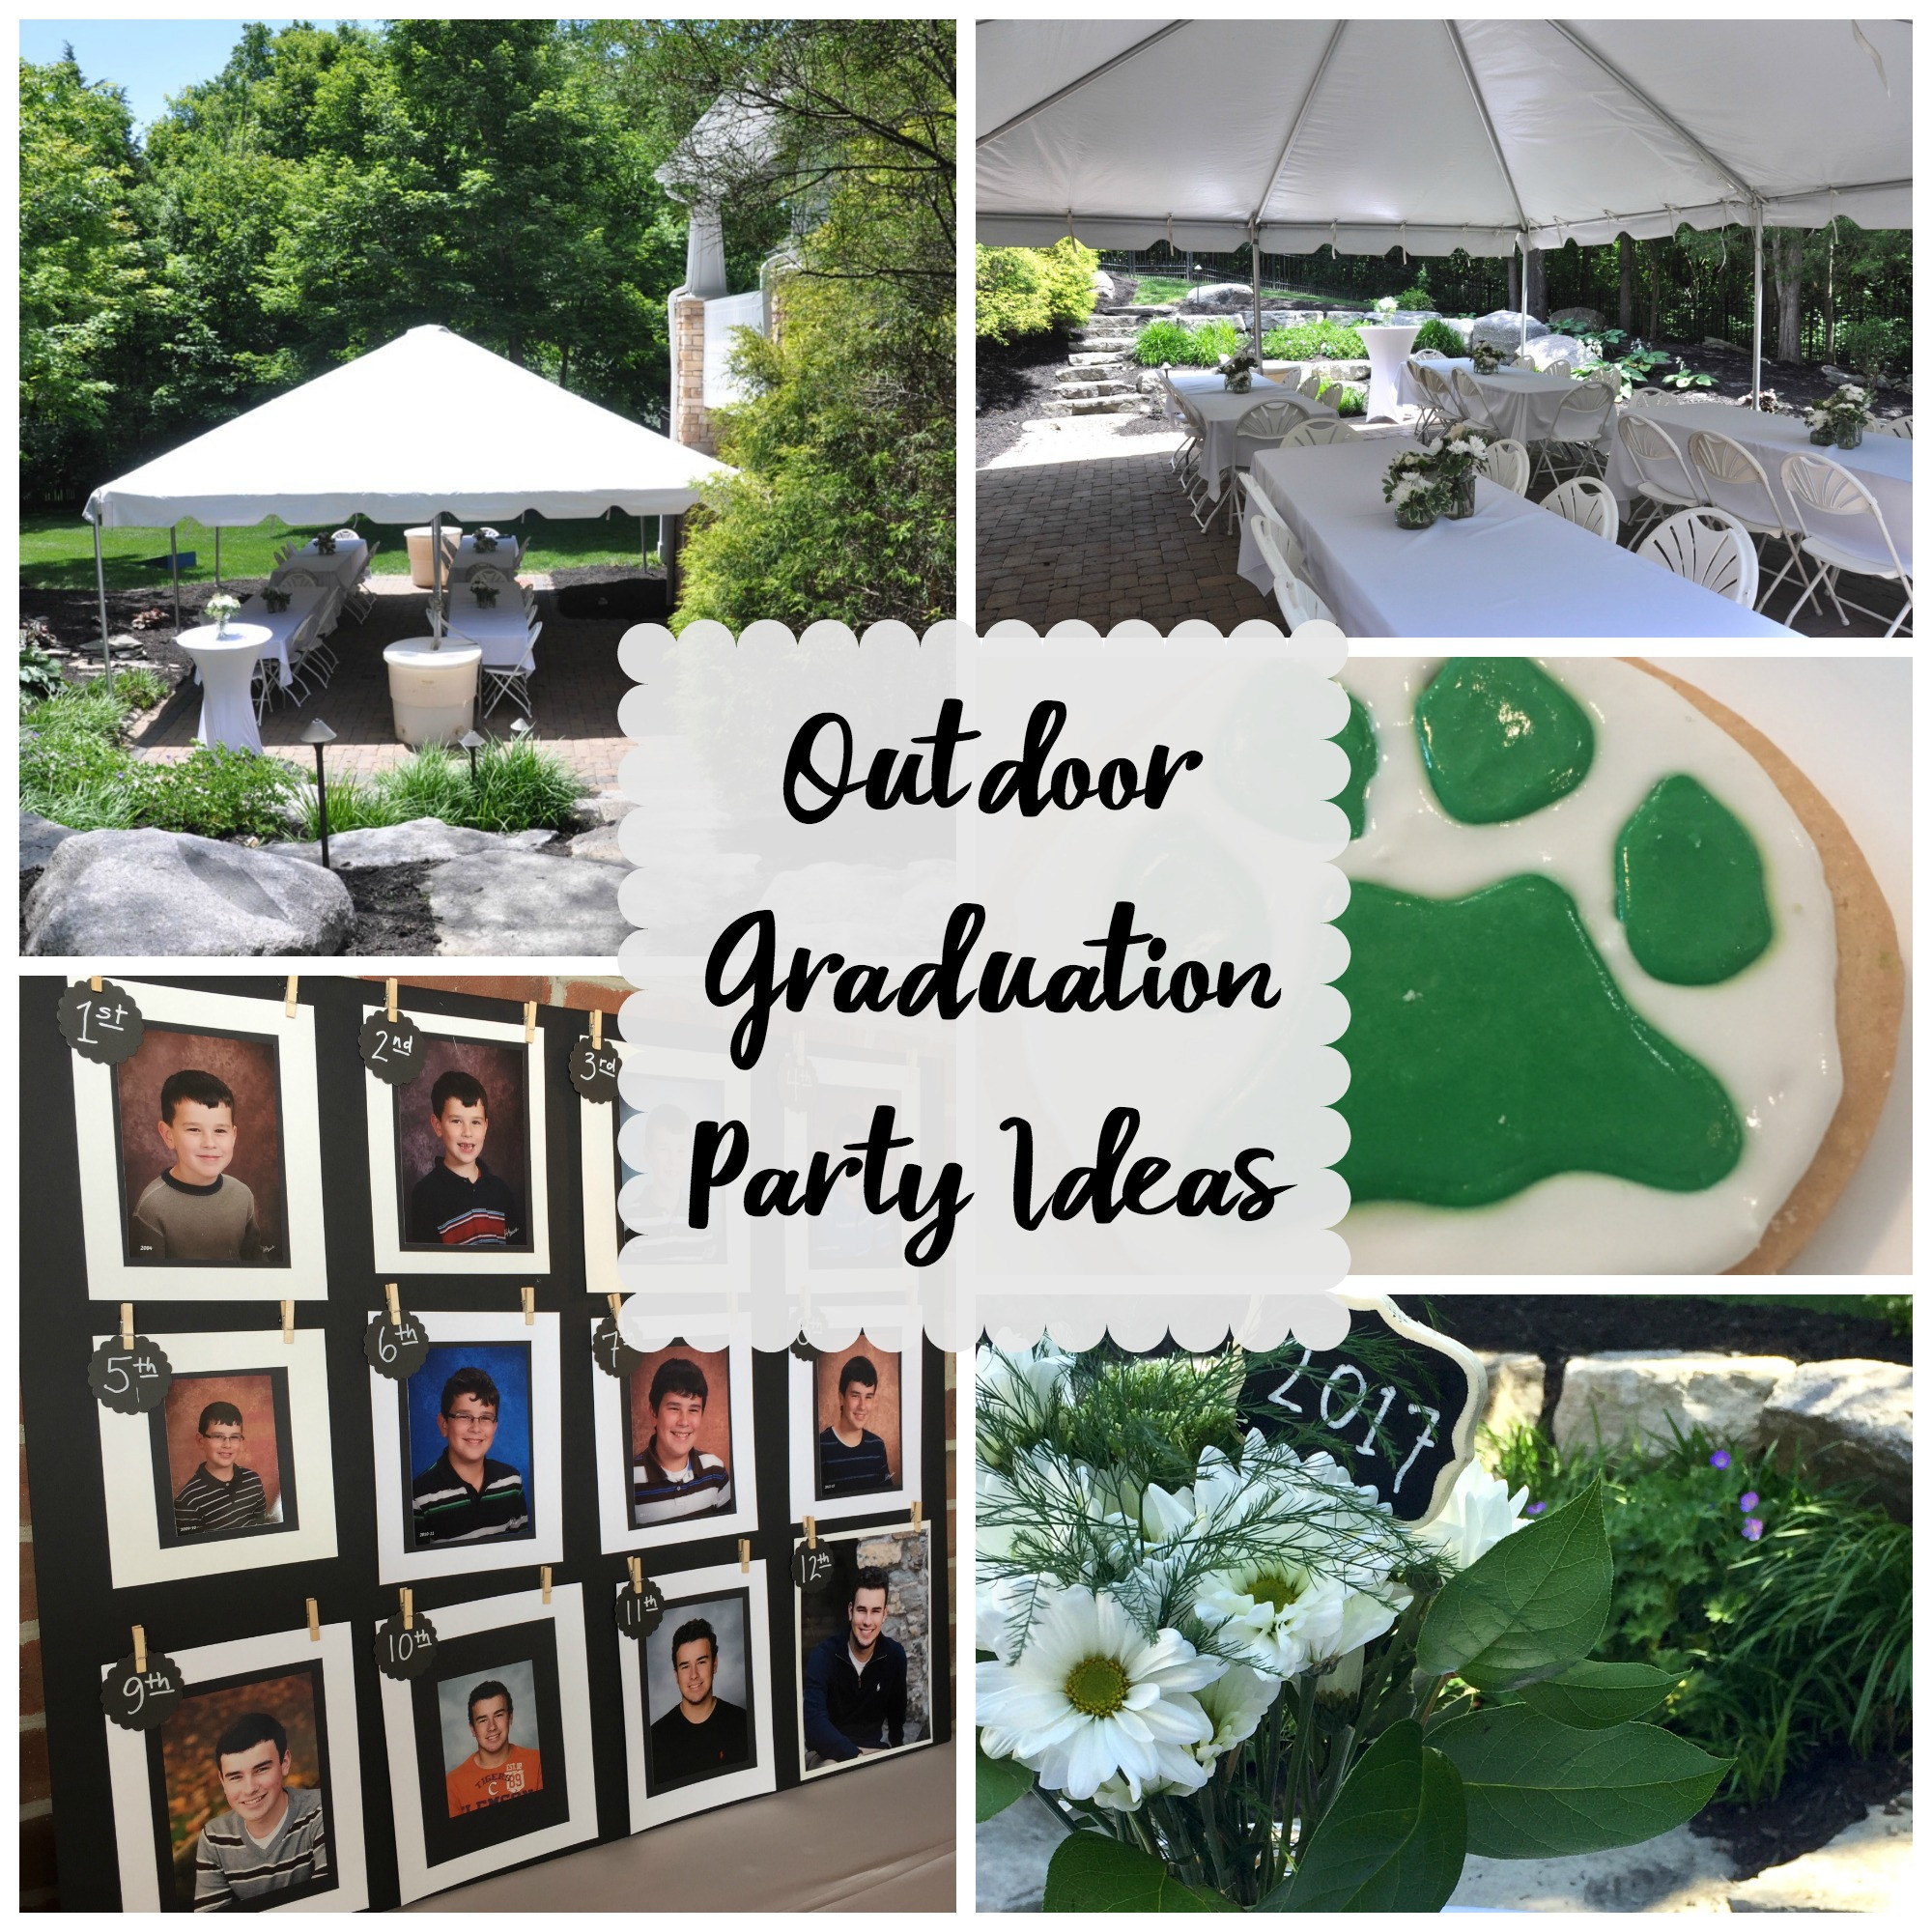 Doctoral Graduation Party Ideas  Outdoor Graduation Party Evolution of Style